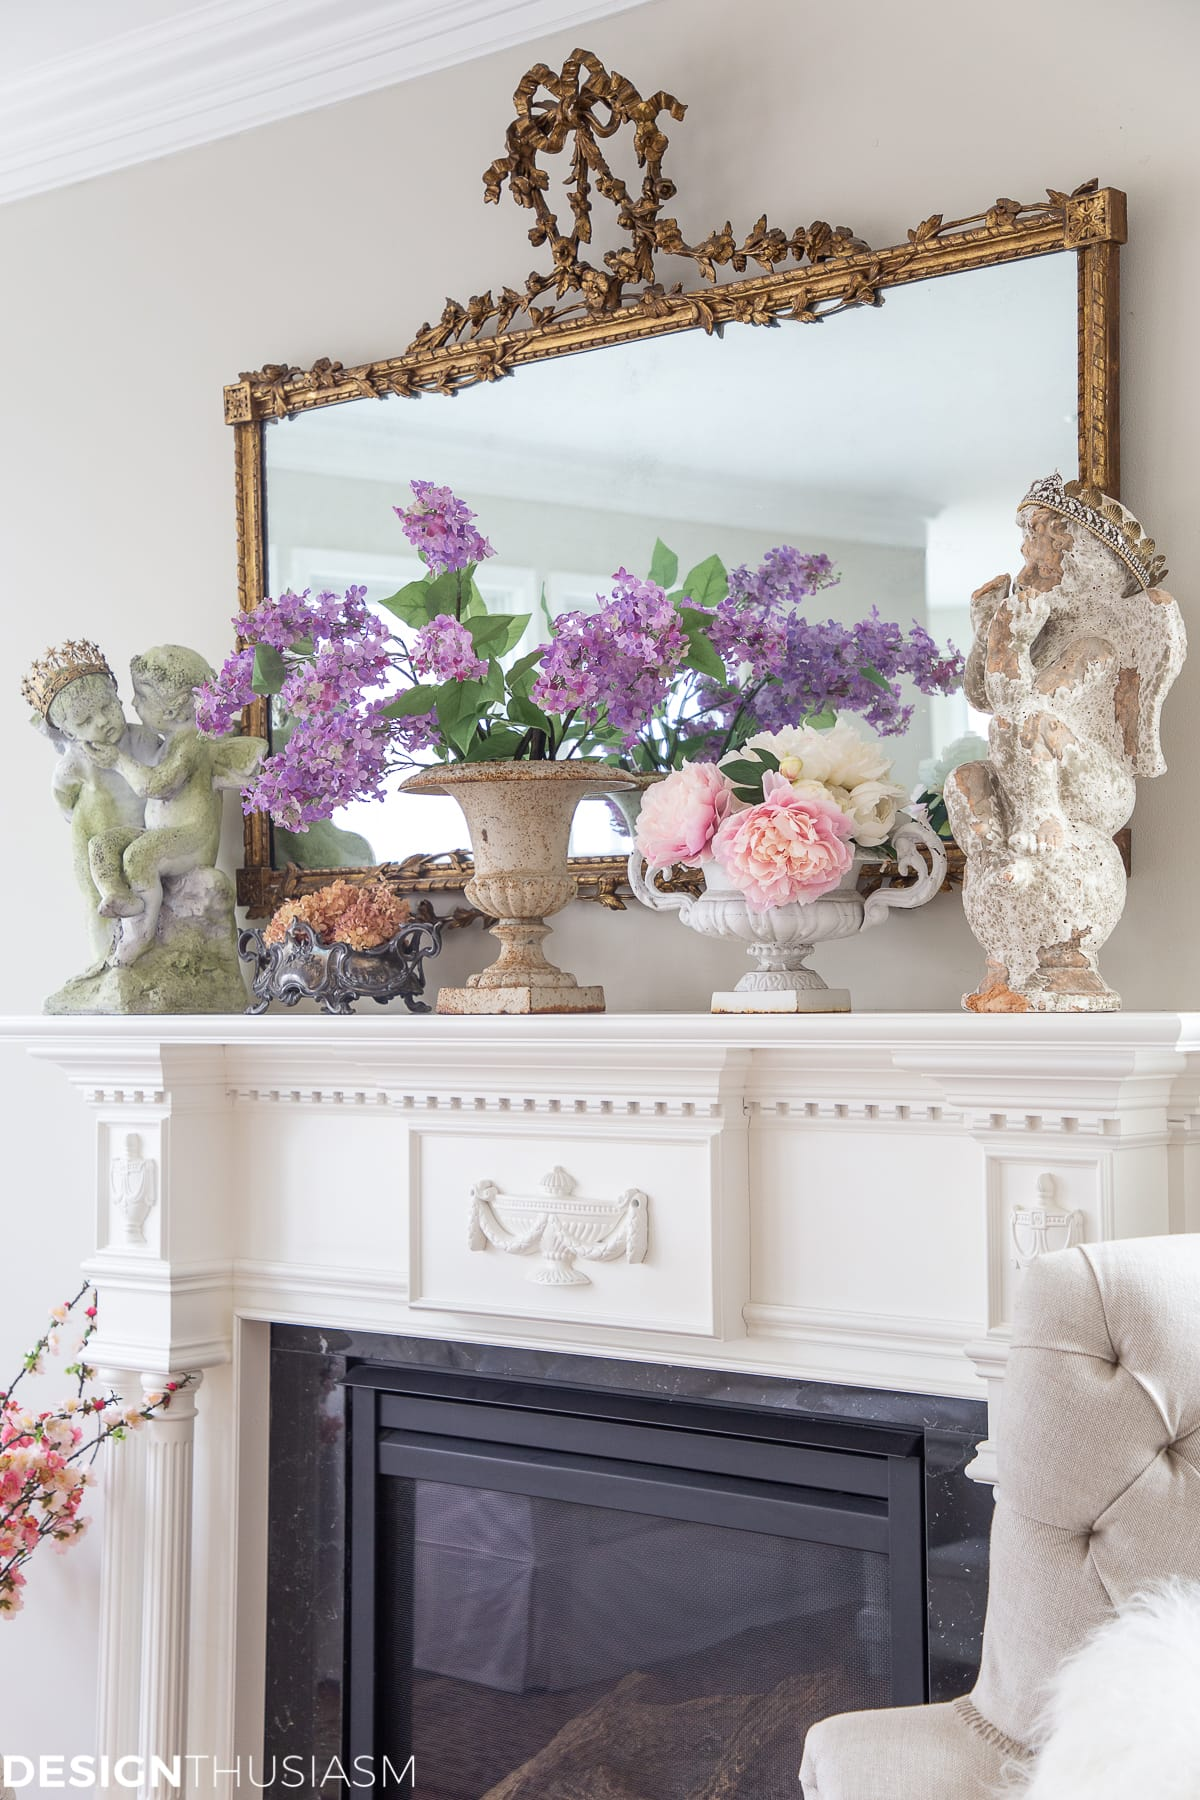 spring garden decor on the mantel